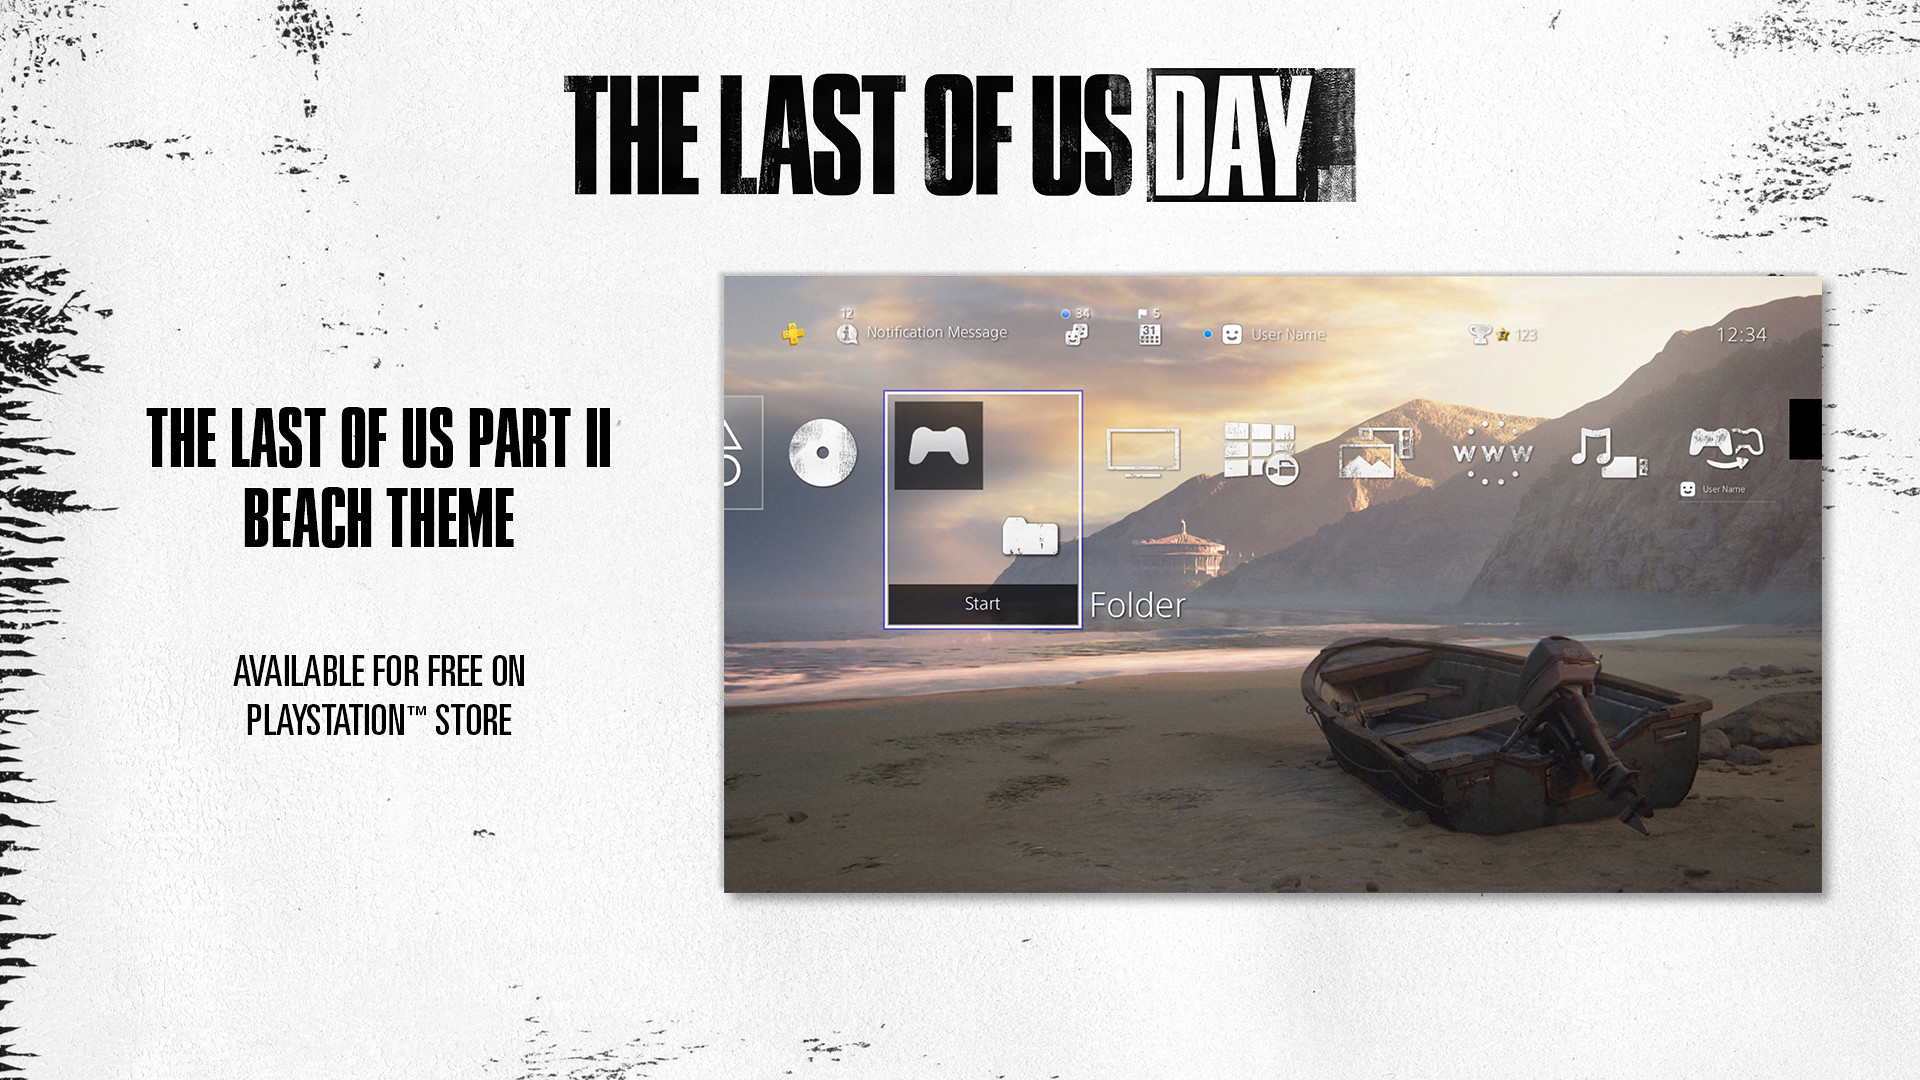 The Last of Us Day 2020 Preview: Celebrate with New Posters, Collectibles, and More – PlayStation.Blog